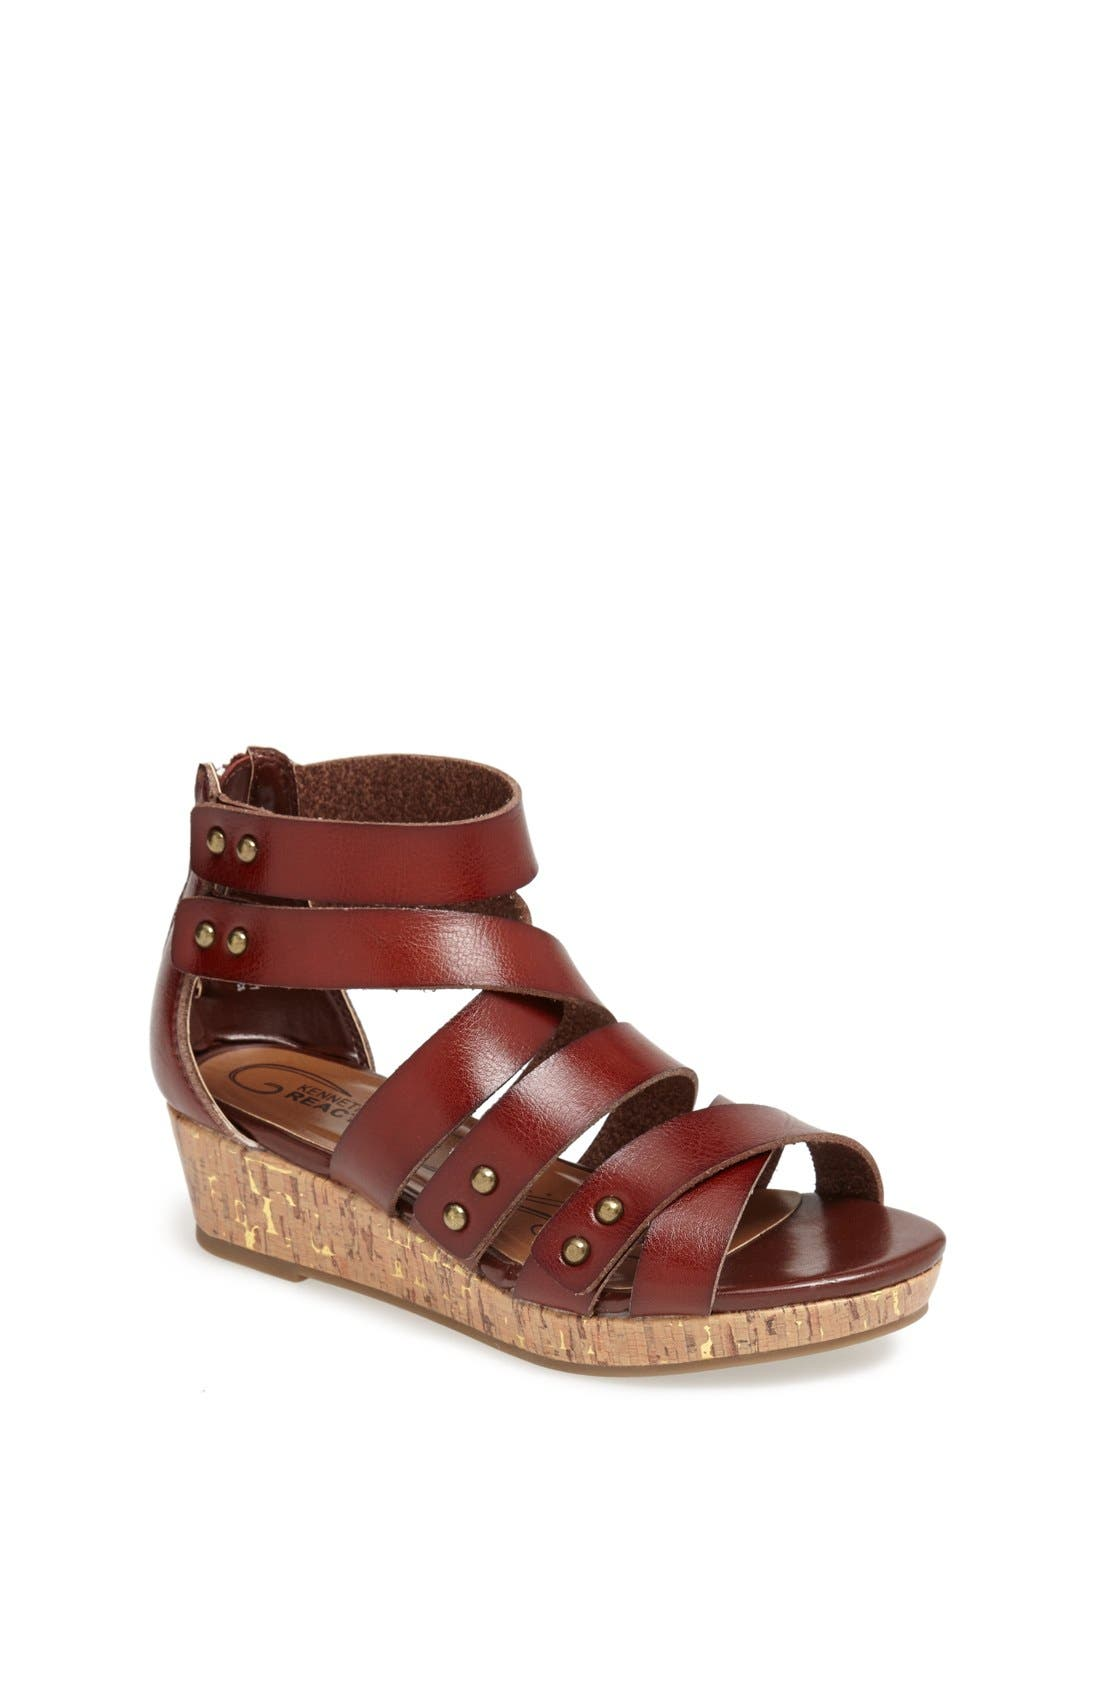 Alternate Image 1 Selected - Kenneth Cole Reaction 'My In The Sky' Sandal (Little Kid & Big Kid)